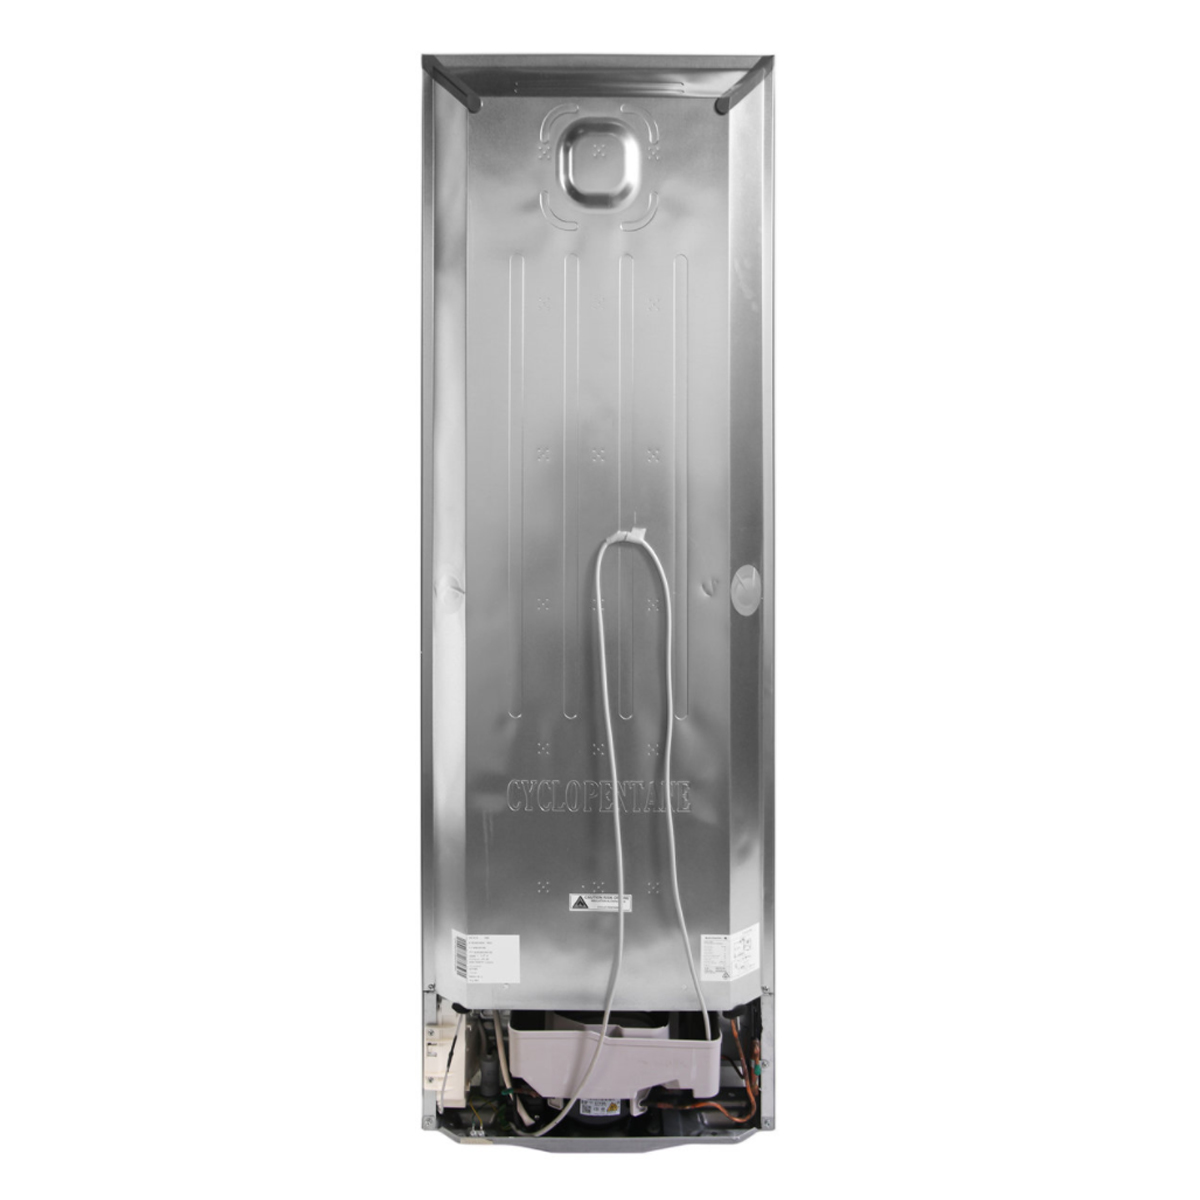 Kelvinator KTB2802WA 275L Top Mount Fridge 56308